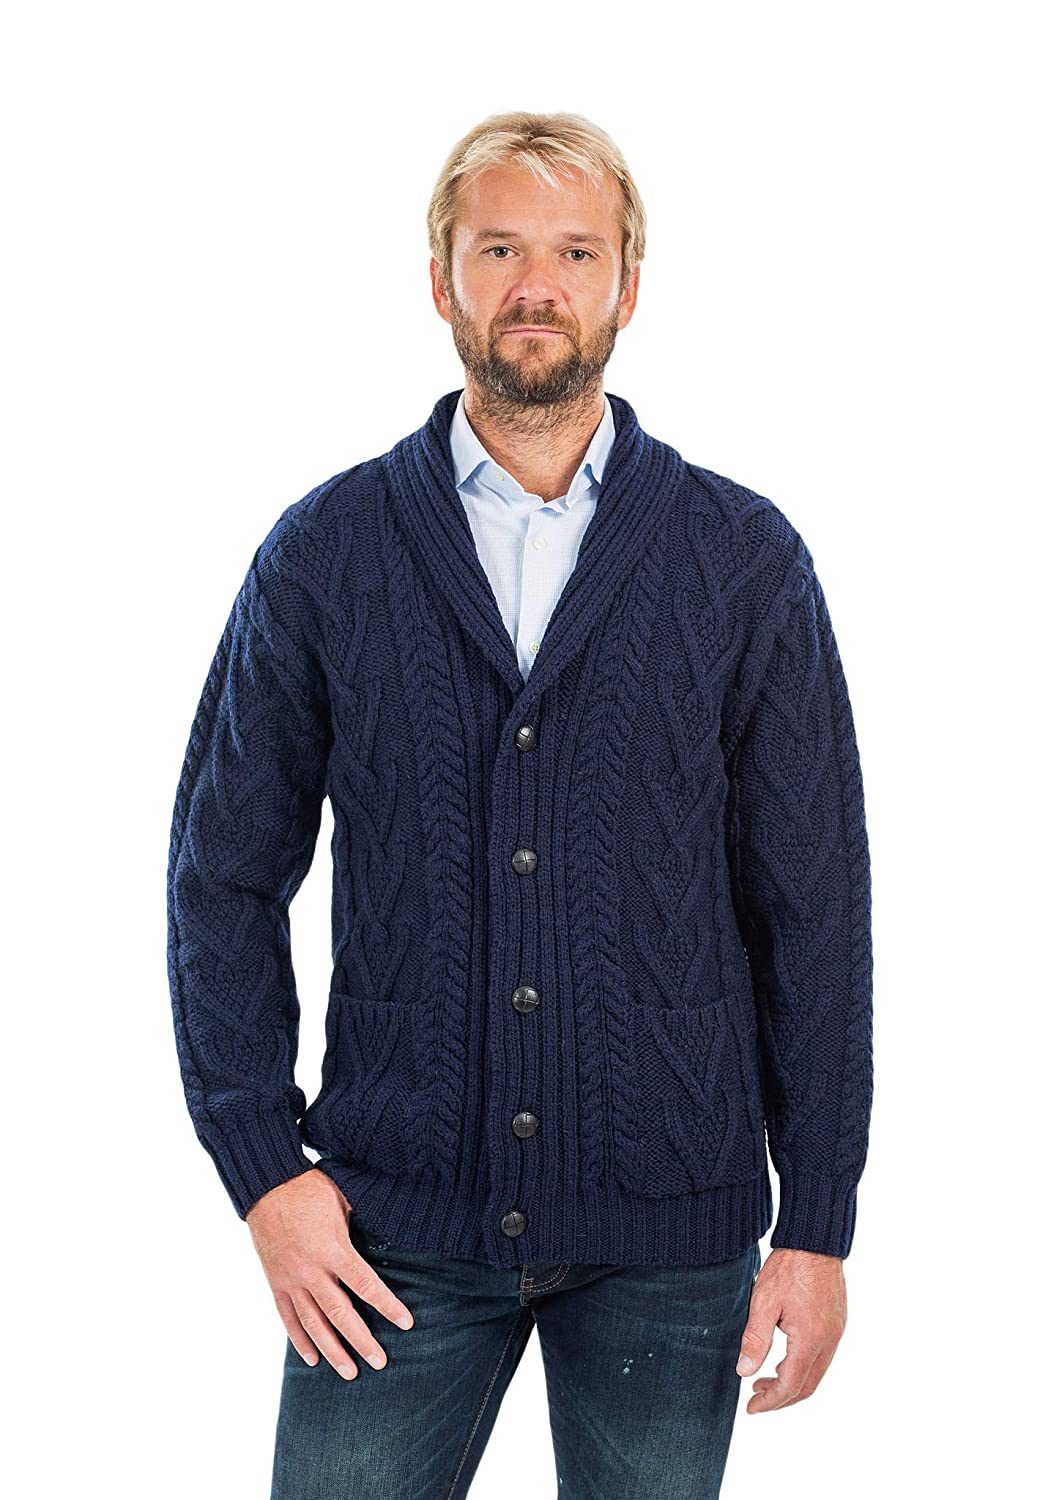 Amazon.com: Aran Cable Shawl-Collar Cardigan para hombre ...